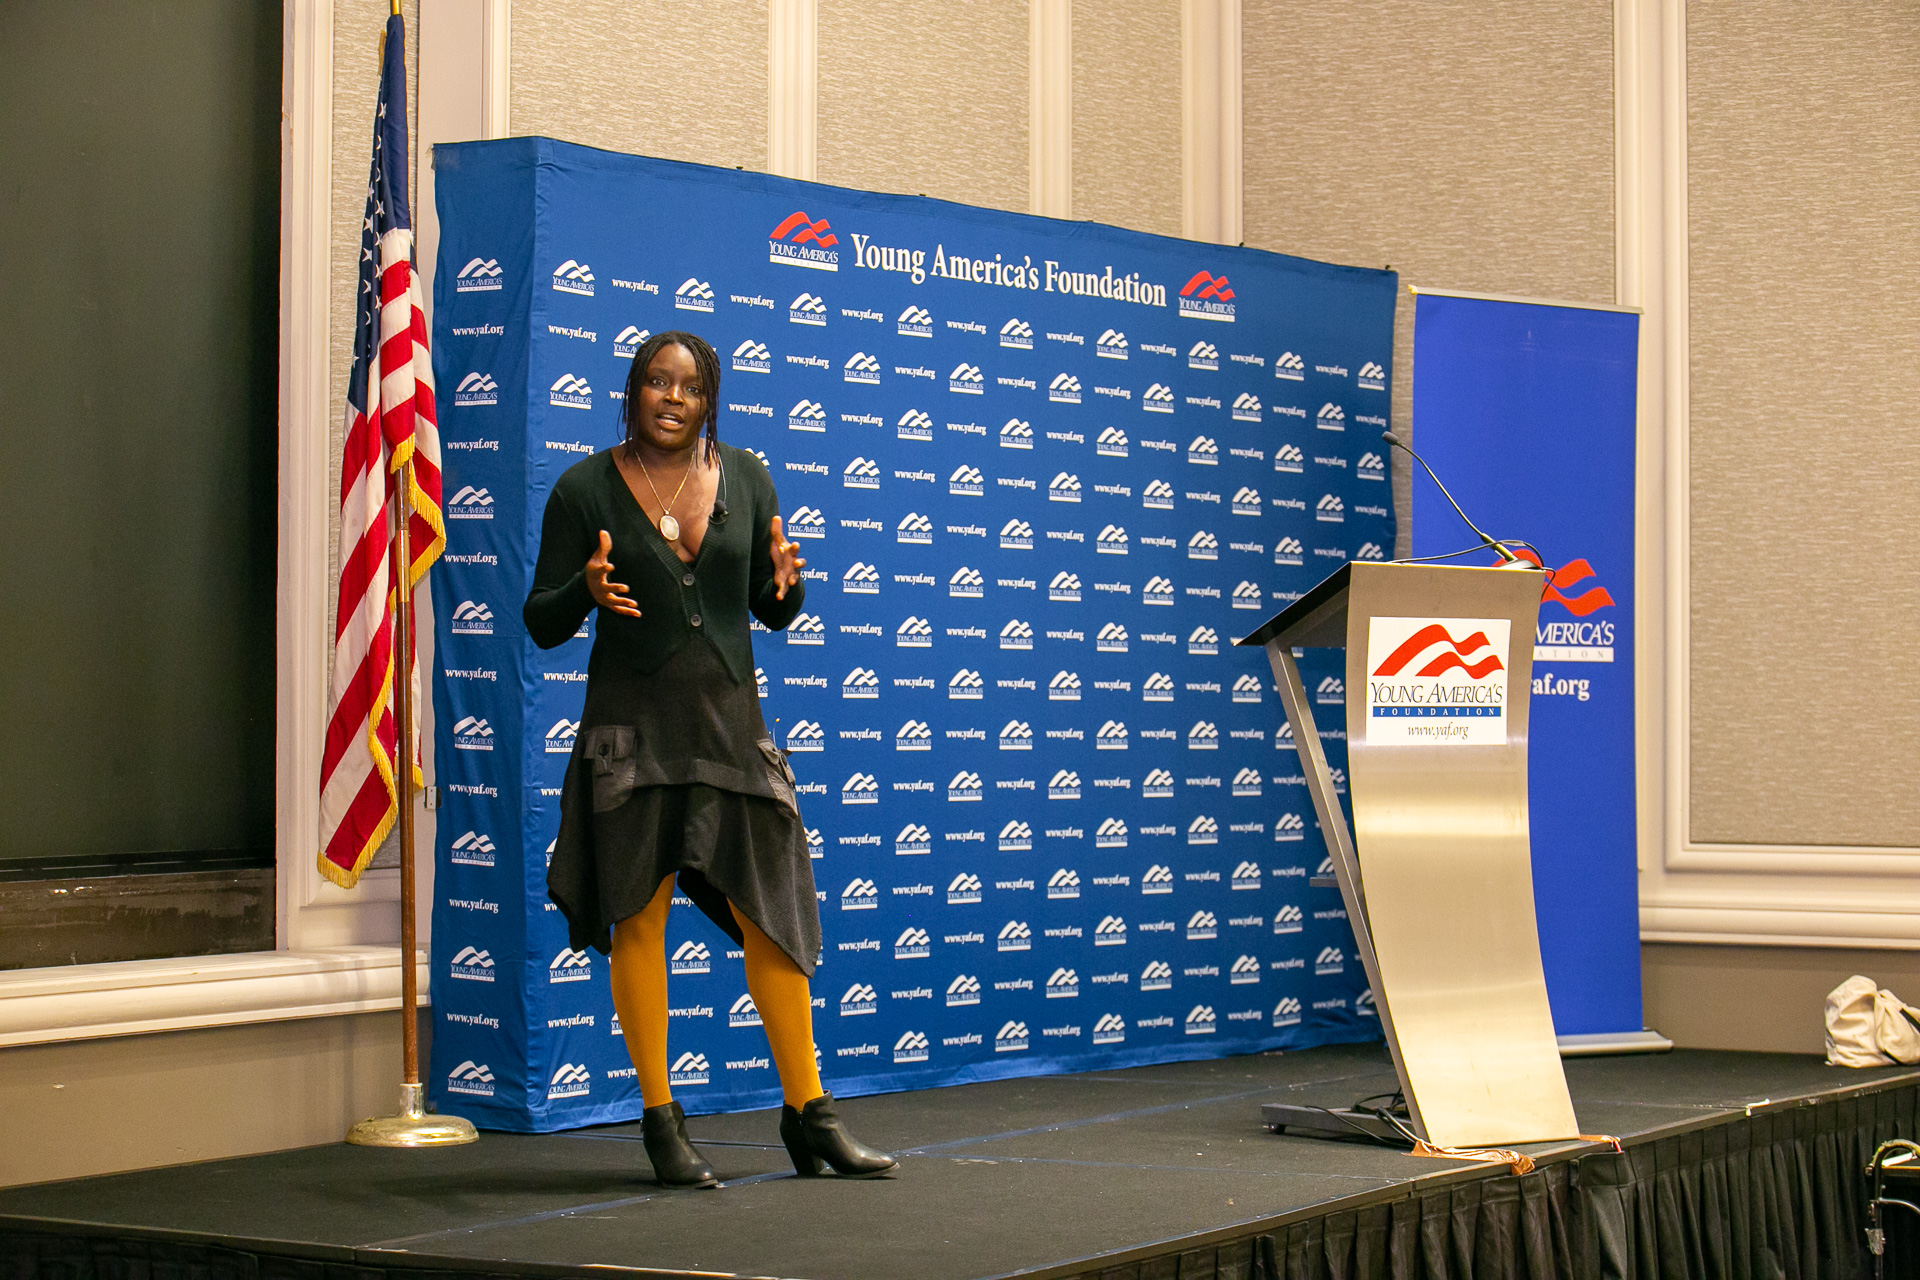 <h1><strong>Why are Some Countries Rich and Others Poor? featuring Magatte Wade At the High School Free Enterprise Leaders Conference</strong></h1>